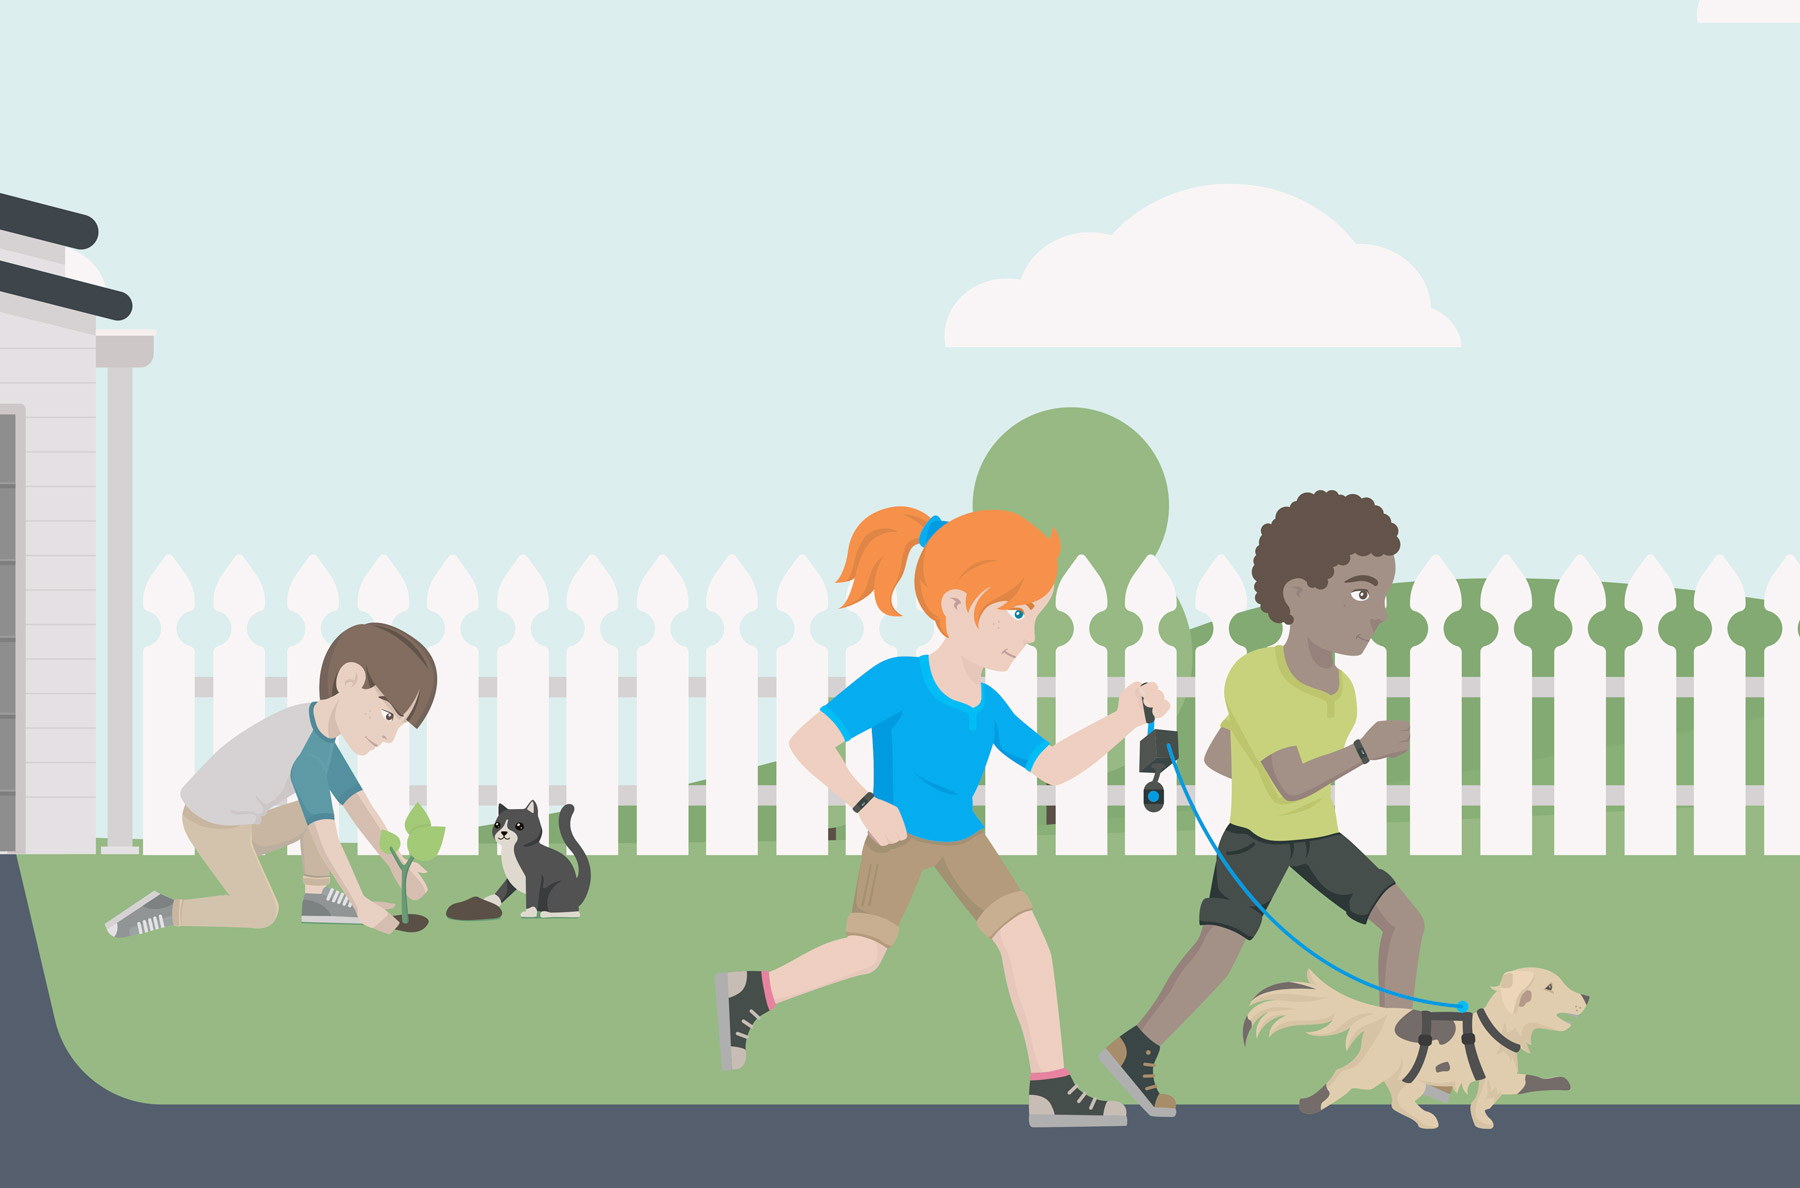 Safe Animal Squad running dog illustrations design by Sinclair Creative Agency